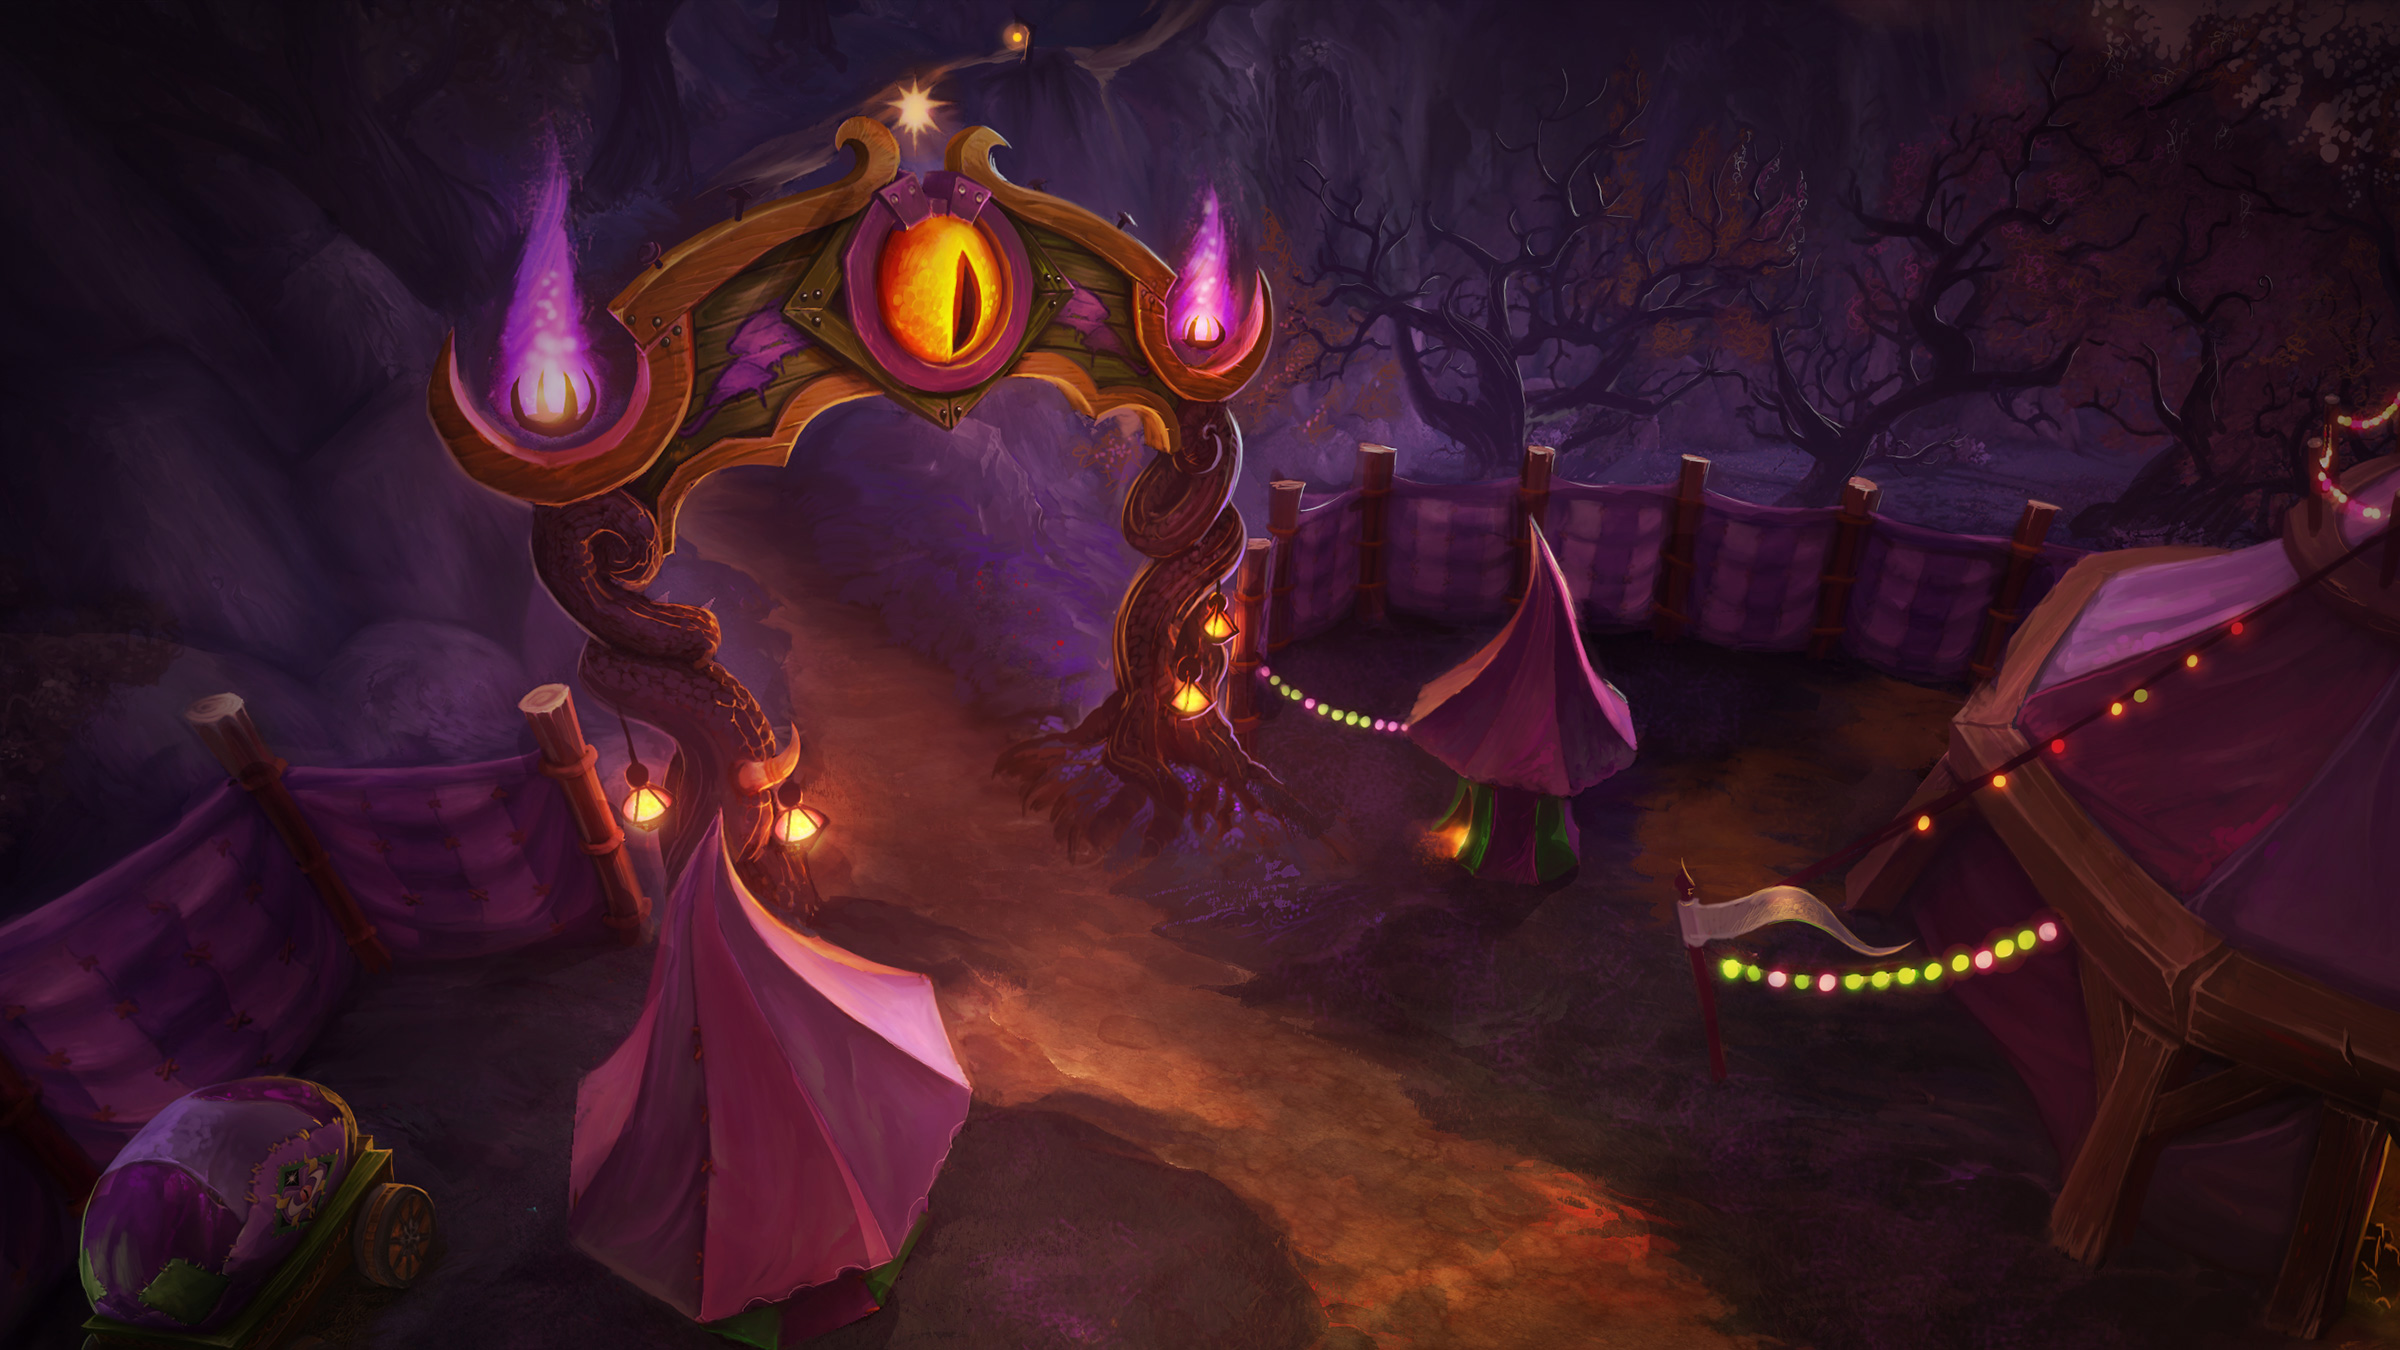 Artwork de la Foire de Sombrelune dans World of Warcraft